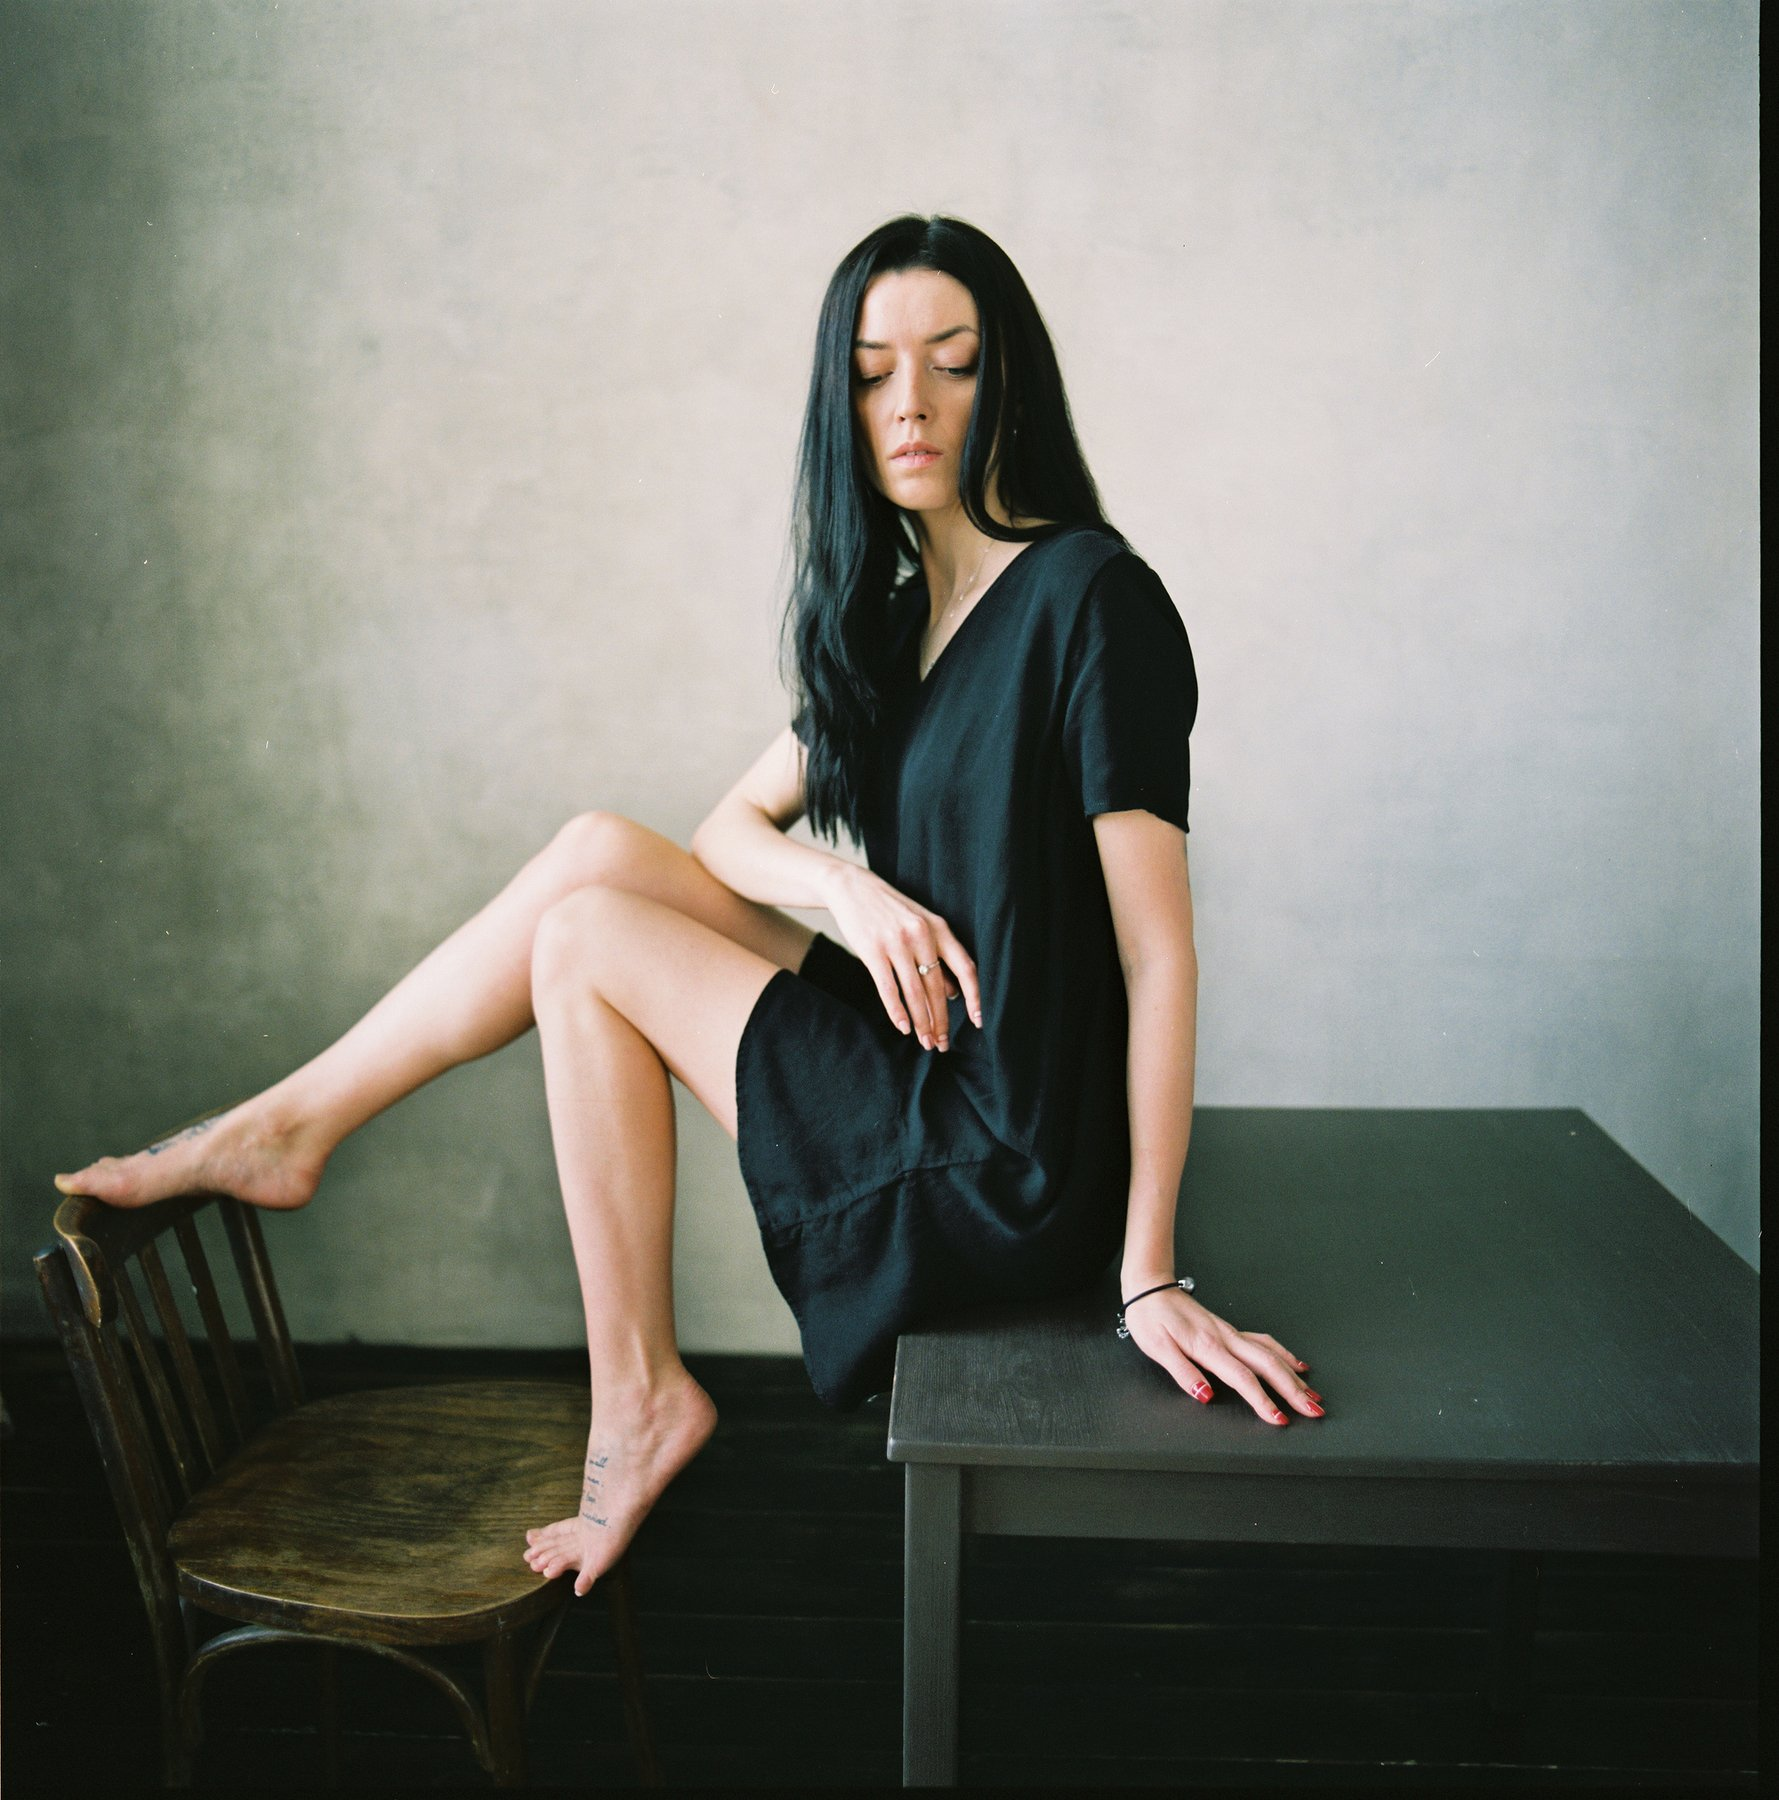 woman, girl, fineart,  portrait,  film,  ishootfilm,  mediumformat,  6x6film,  bronica,  bronicaec,  zenzabronica,  fuji400h,  fuji, color film,  grain,  square, vogue, glamour, beautiful, beauty, legs, hair, classy,, Дмитрий Щекочихин